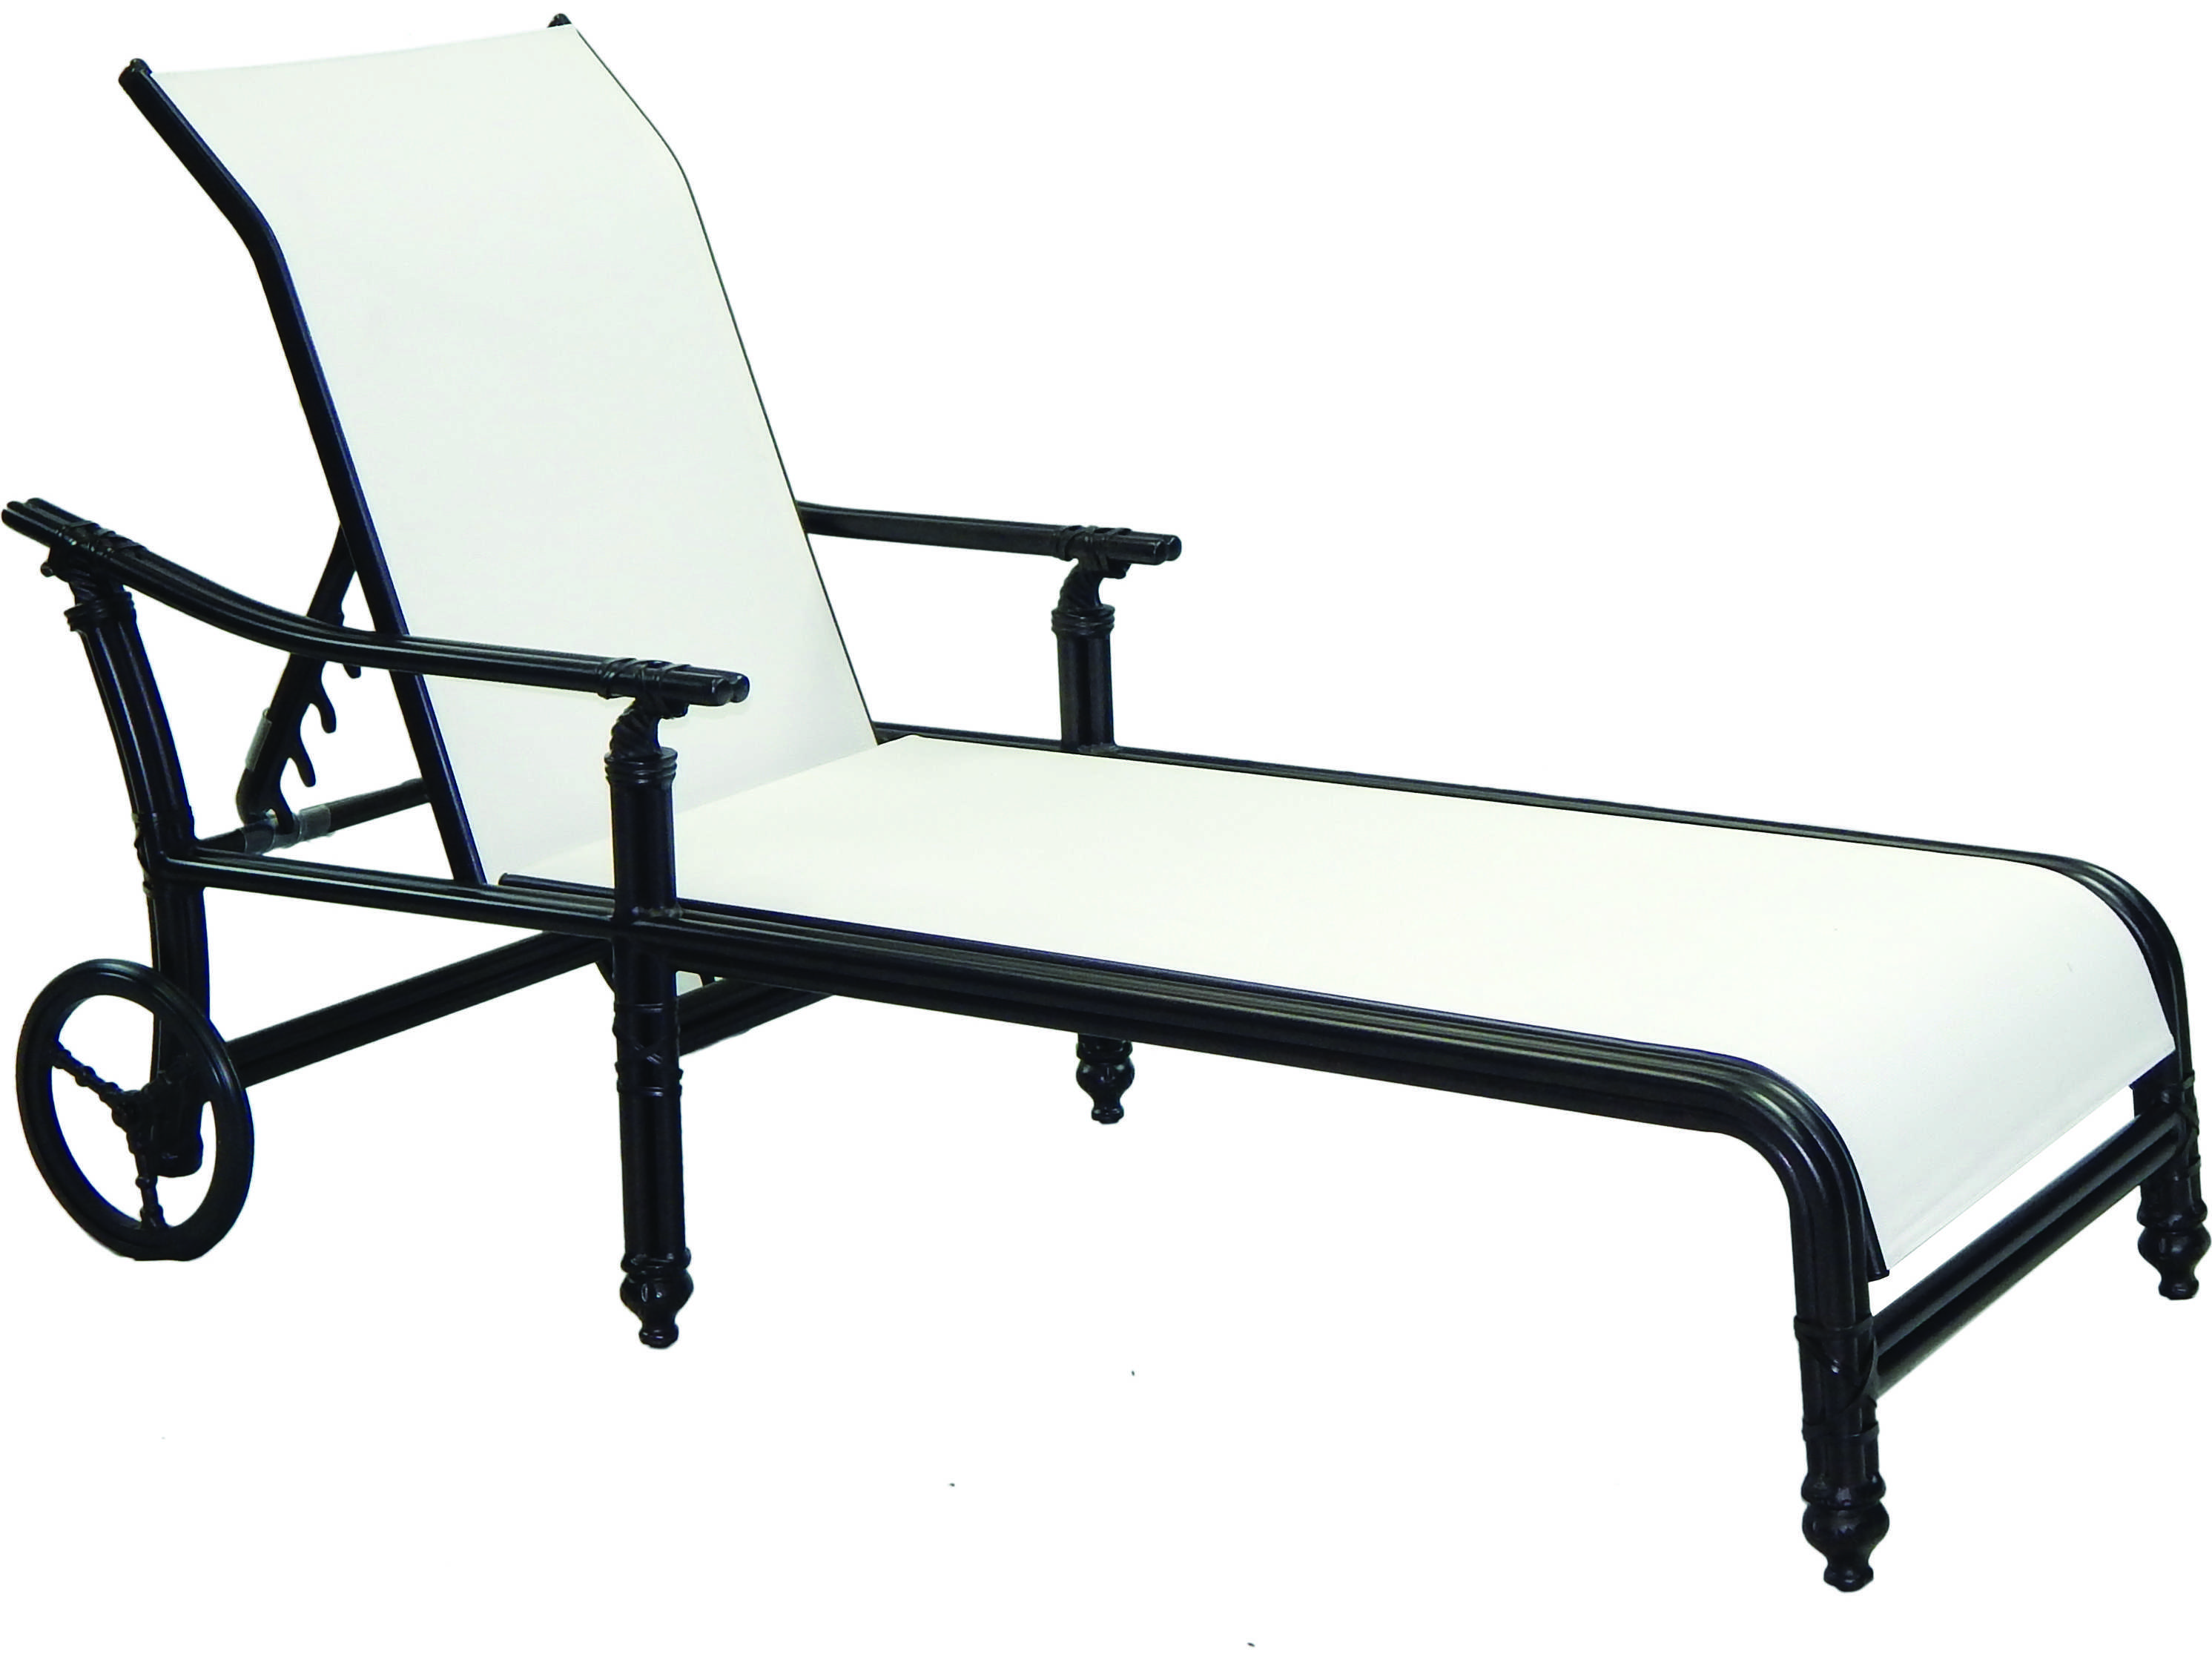 Castelle coco isle sling cast aluminum adjustable chaise for Aluminum chaise lounge with wheels